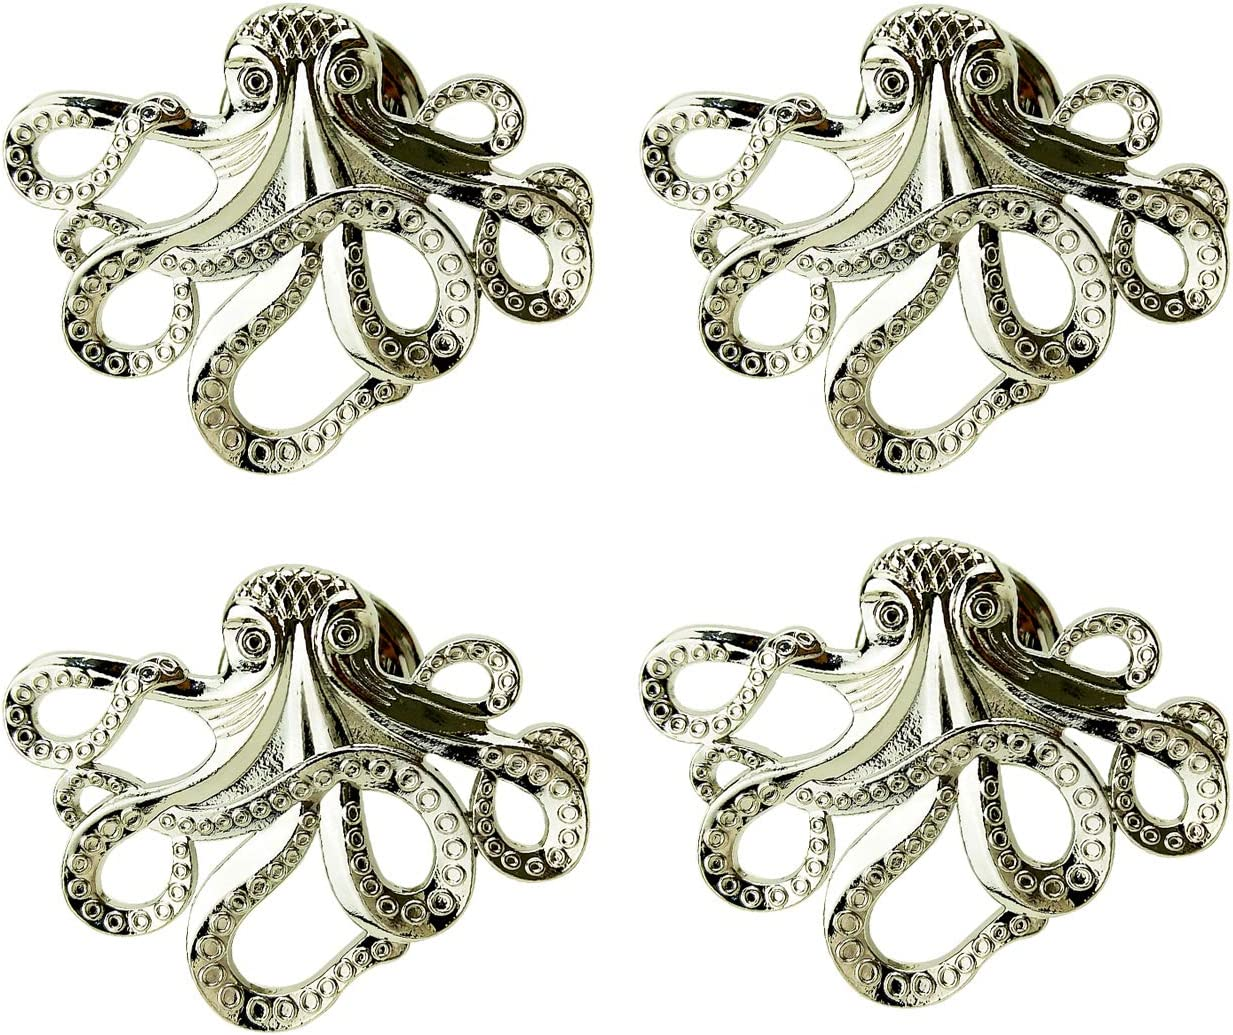 ZTie Set of 4 Octopus Drawer knobs for Coastal Home Metal Octopus Cabinet Knobs Nautical Beach Decor Dresser Knobs Pulls Handles (Silver)